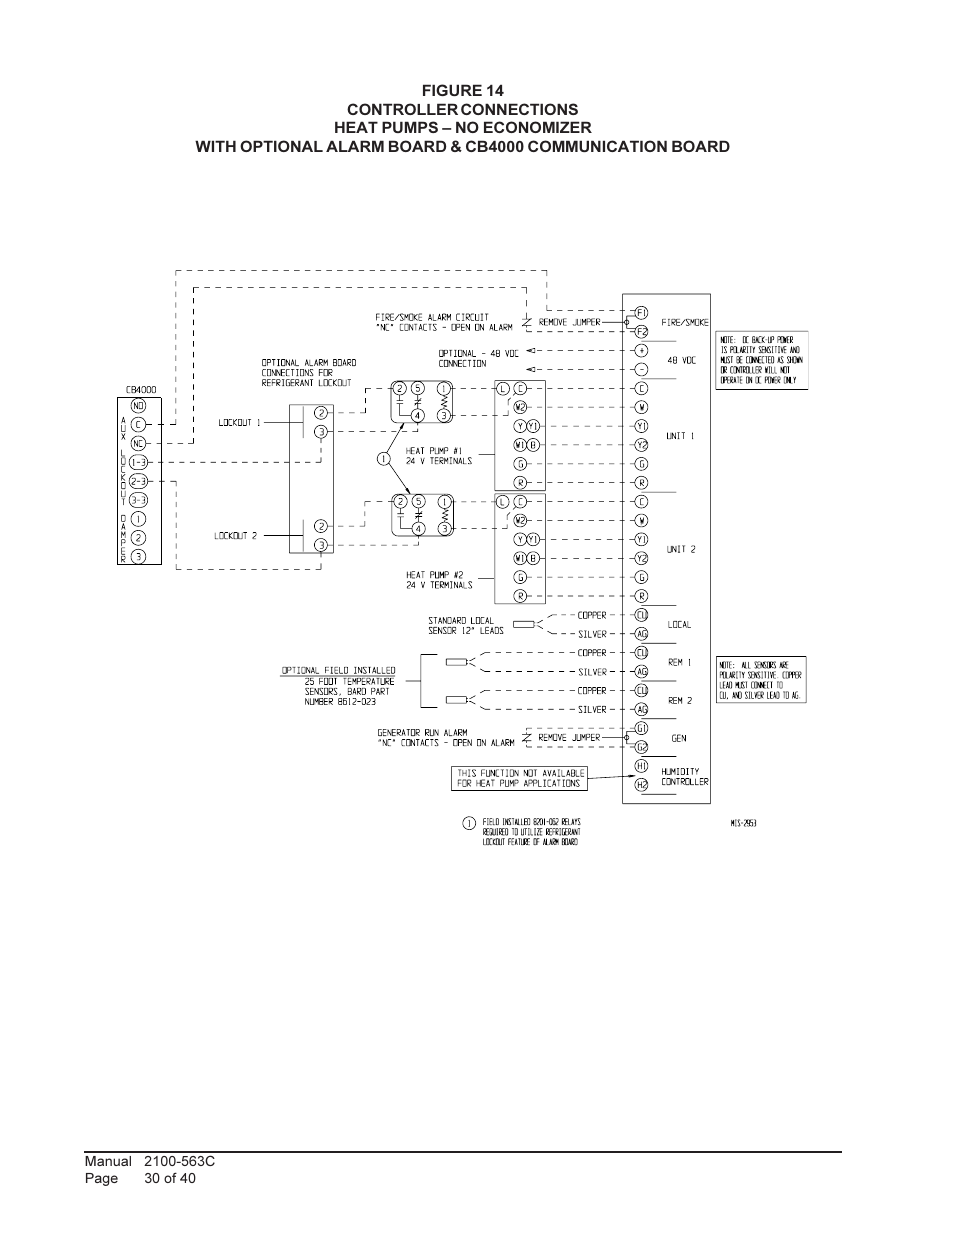 Lead Lag Pump Control Wiring Diagram Library Rhombus Panel Moreover Water Bard Solid State Dual Unit Controller Mc4000 User Manual Page 30